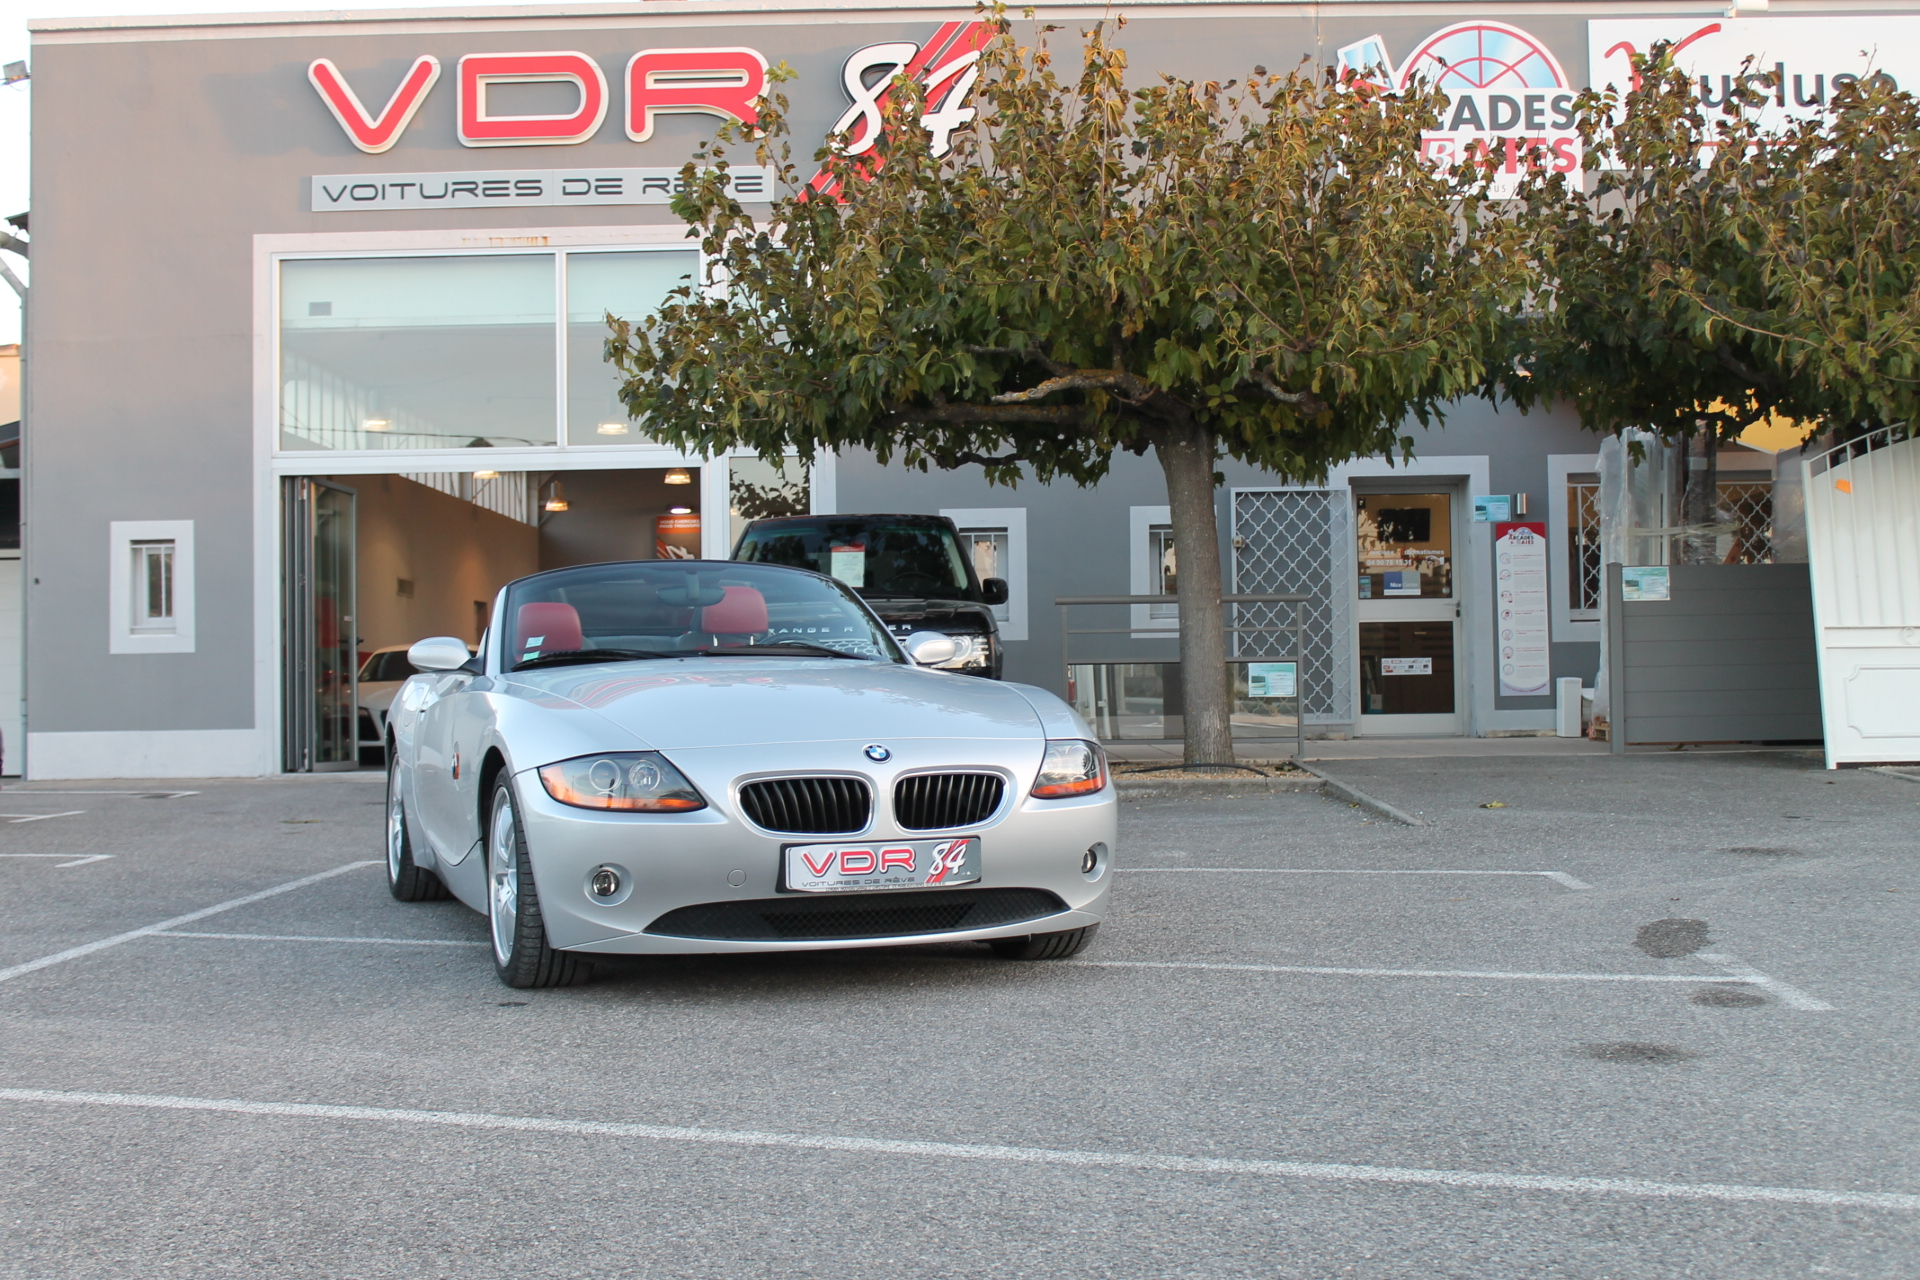 BMW Z4 Roadster 2004 - BVM5